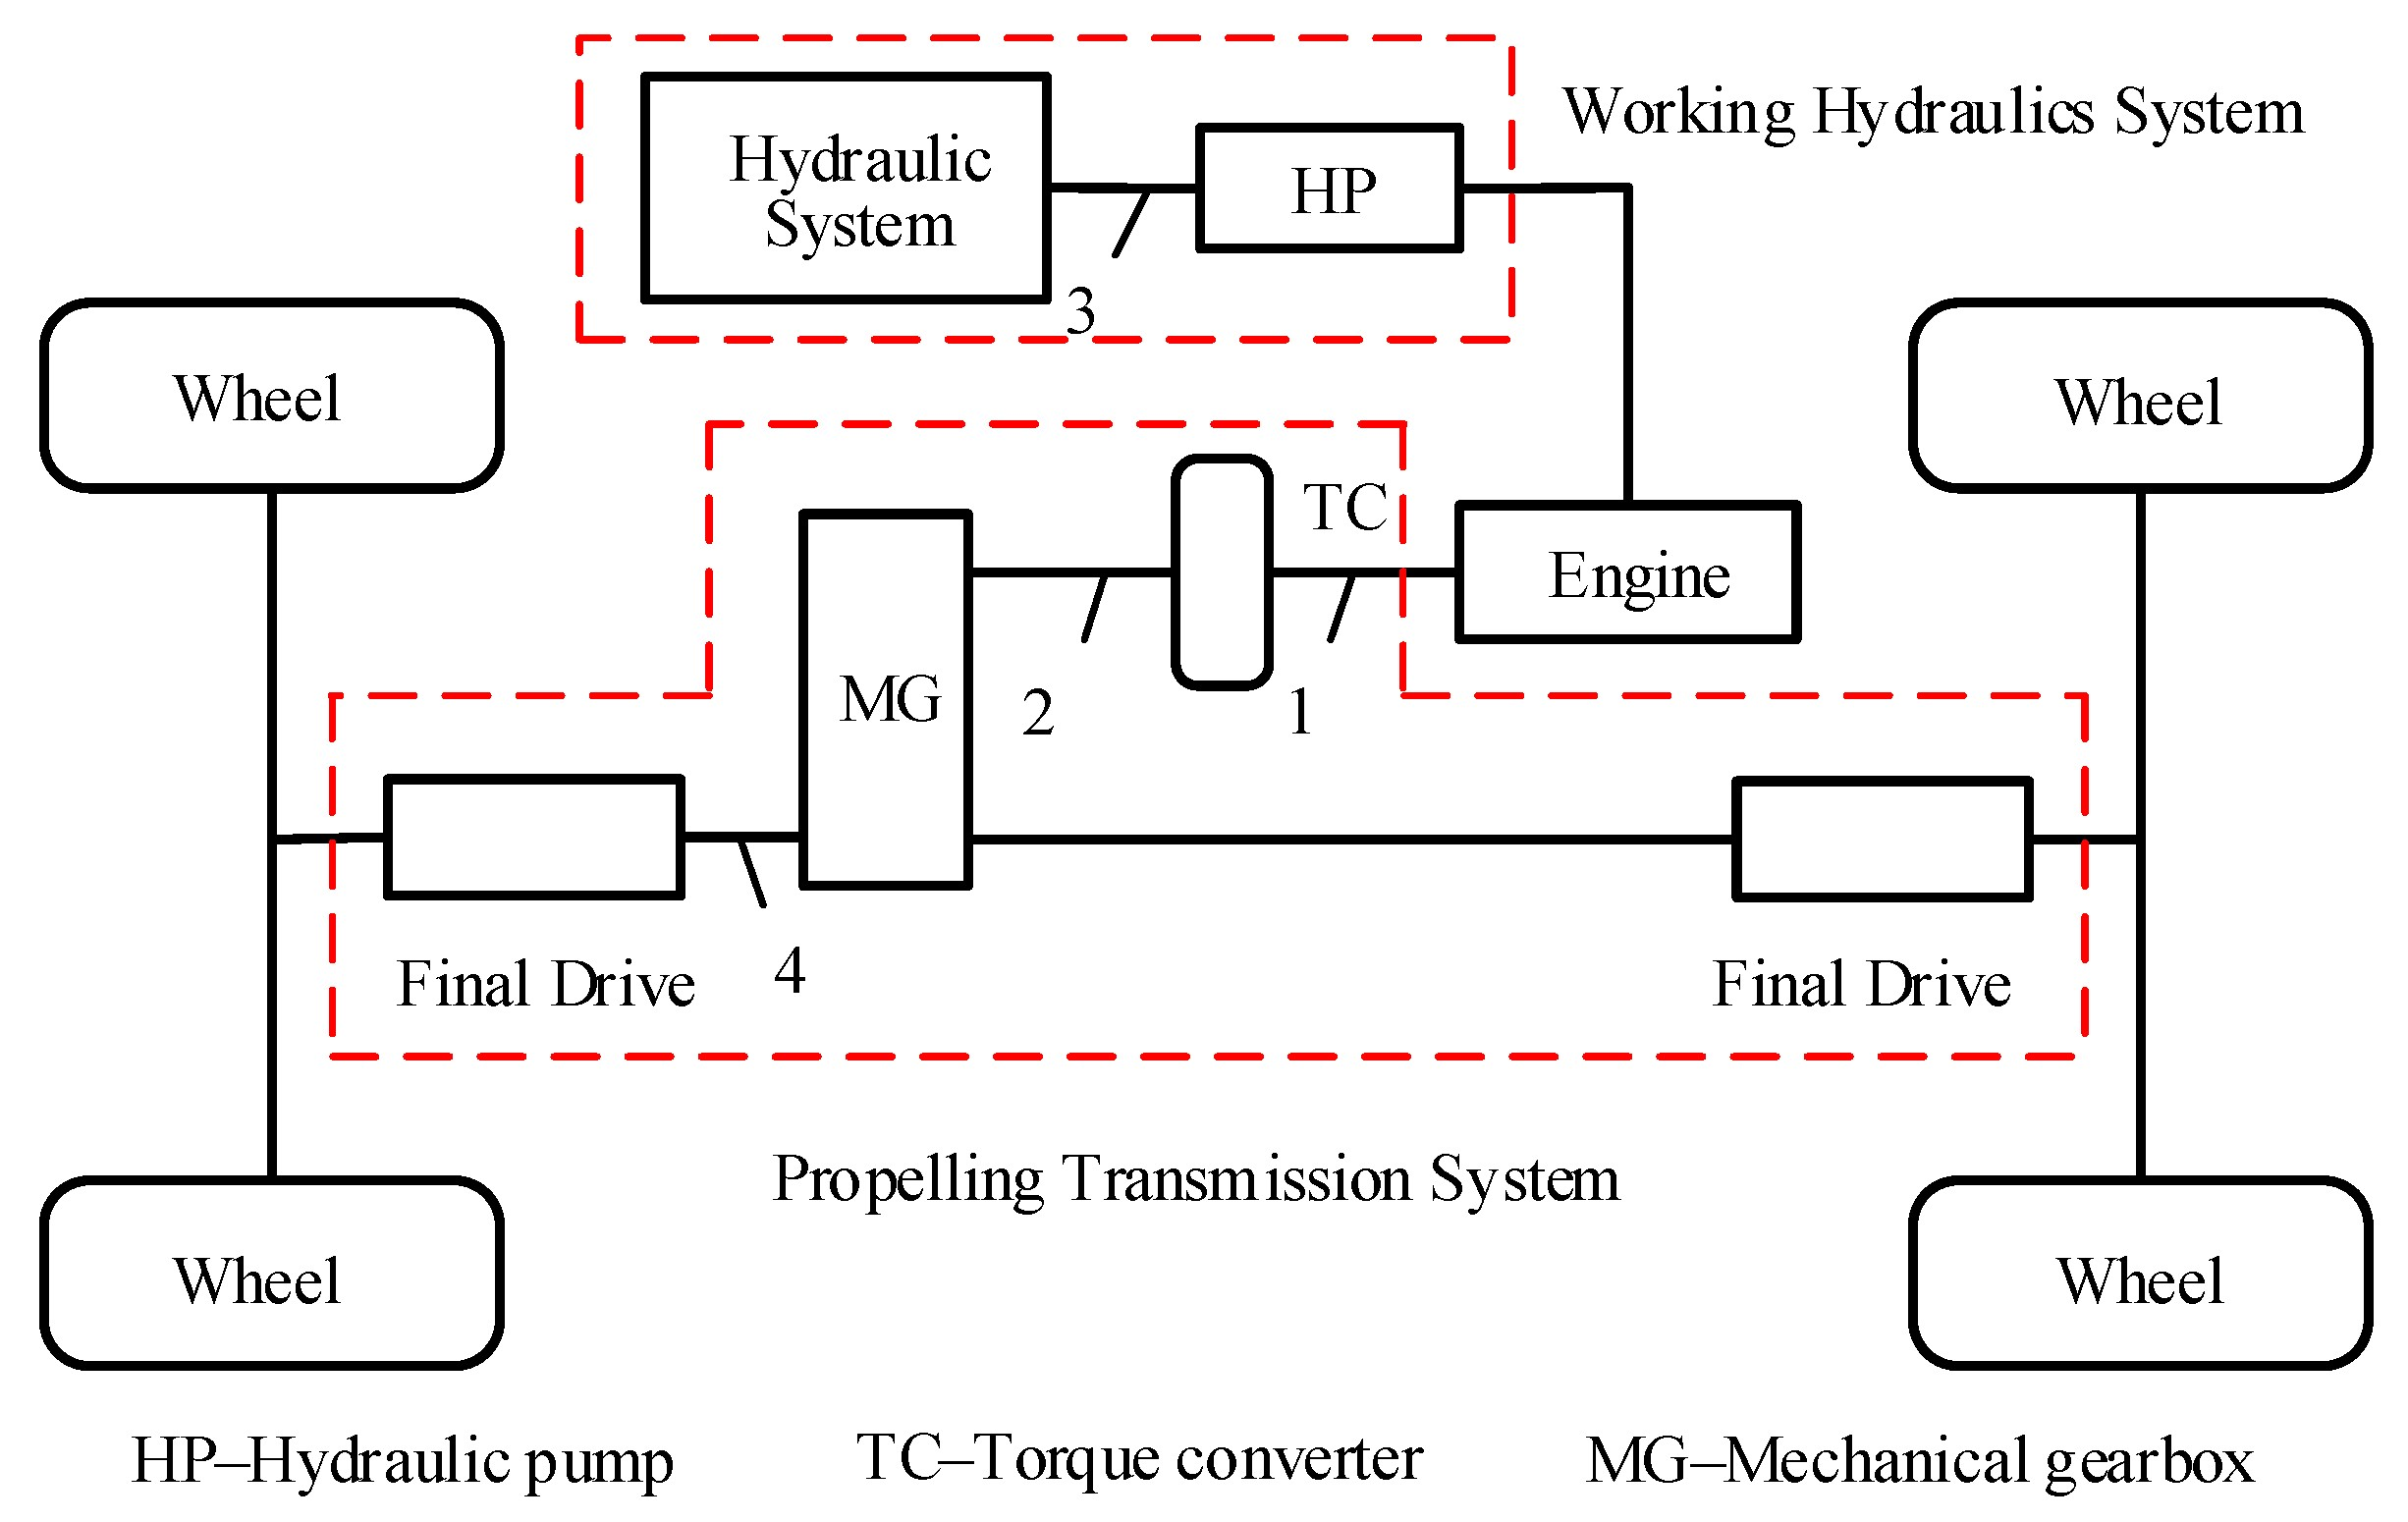 Torque Converter Diagram Energies Free Full Text Of Torque Converter Diagram